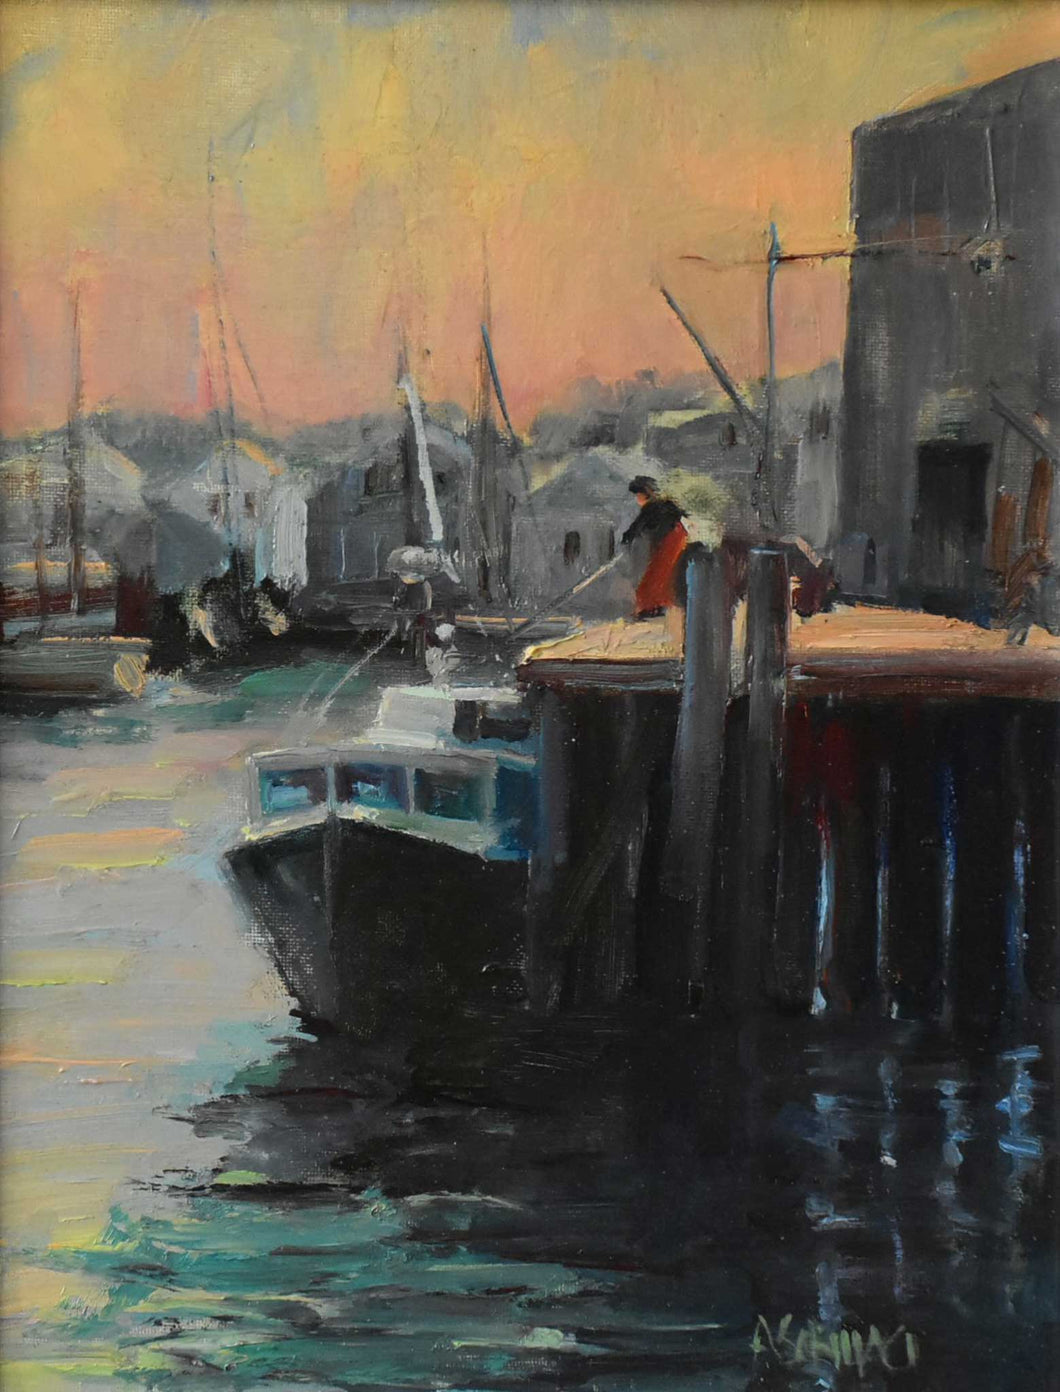 Painting: Gloucester Catch Artist: Anthony Schillaci Medium: Oil on Canvas Size: 11